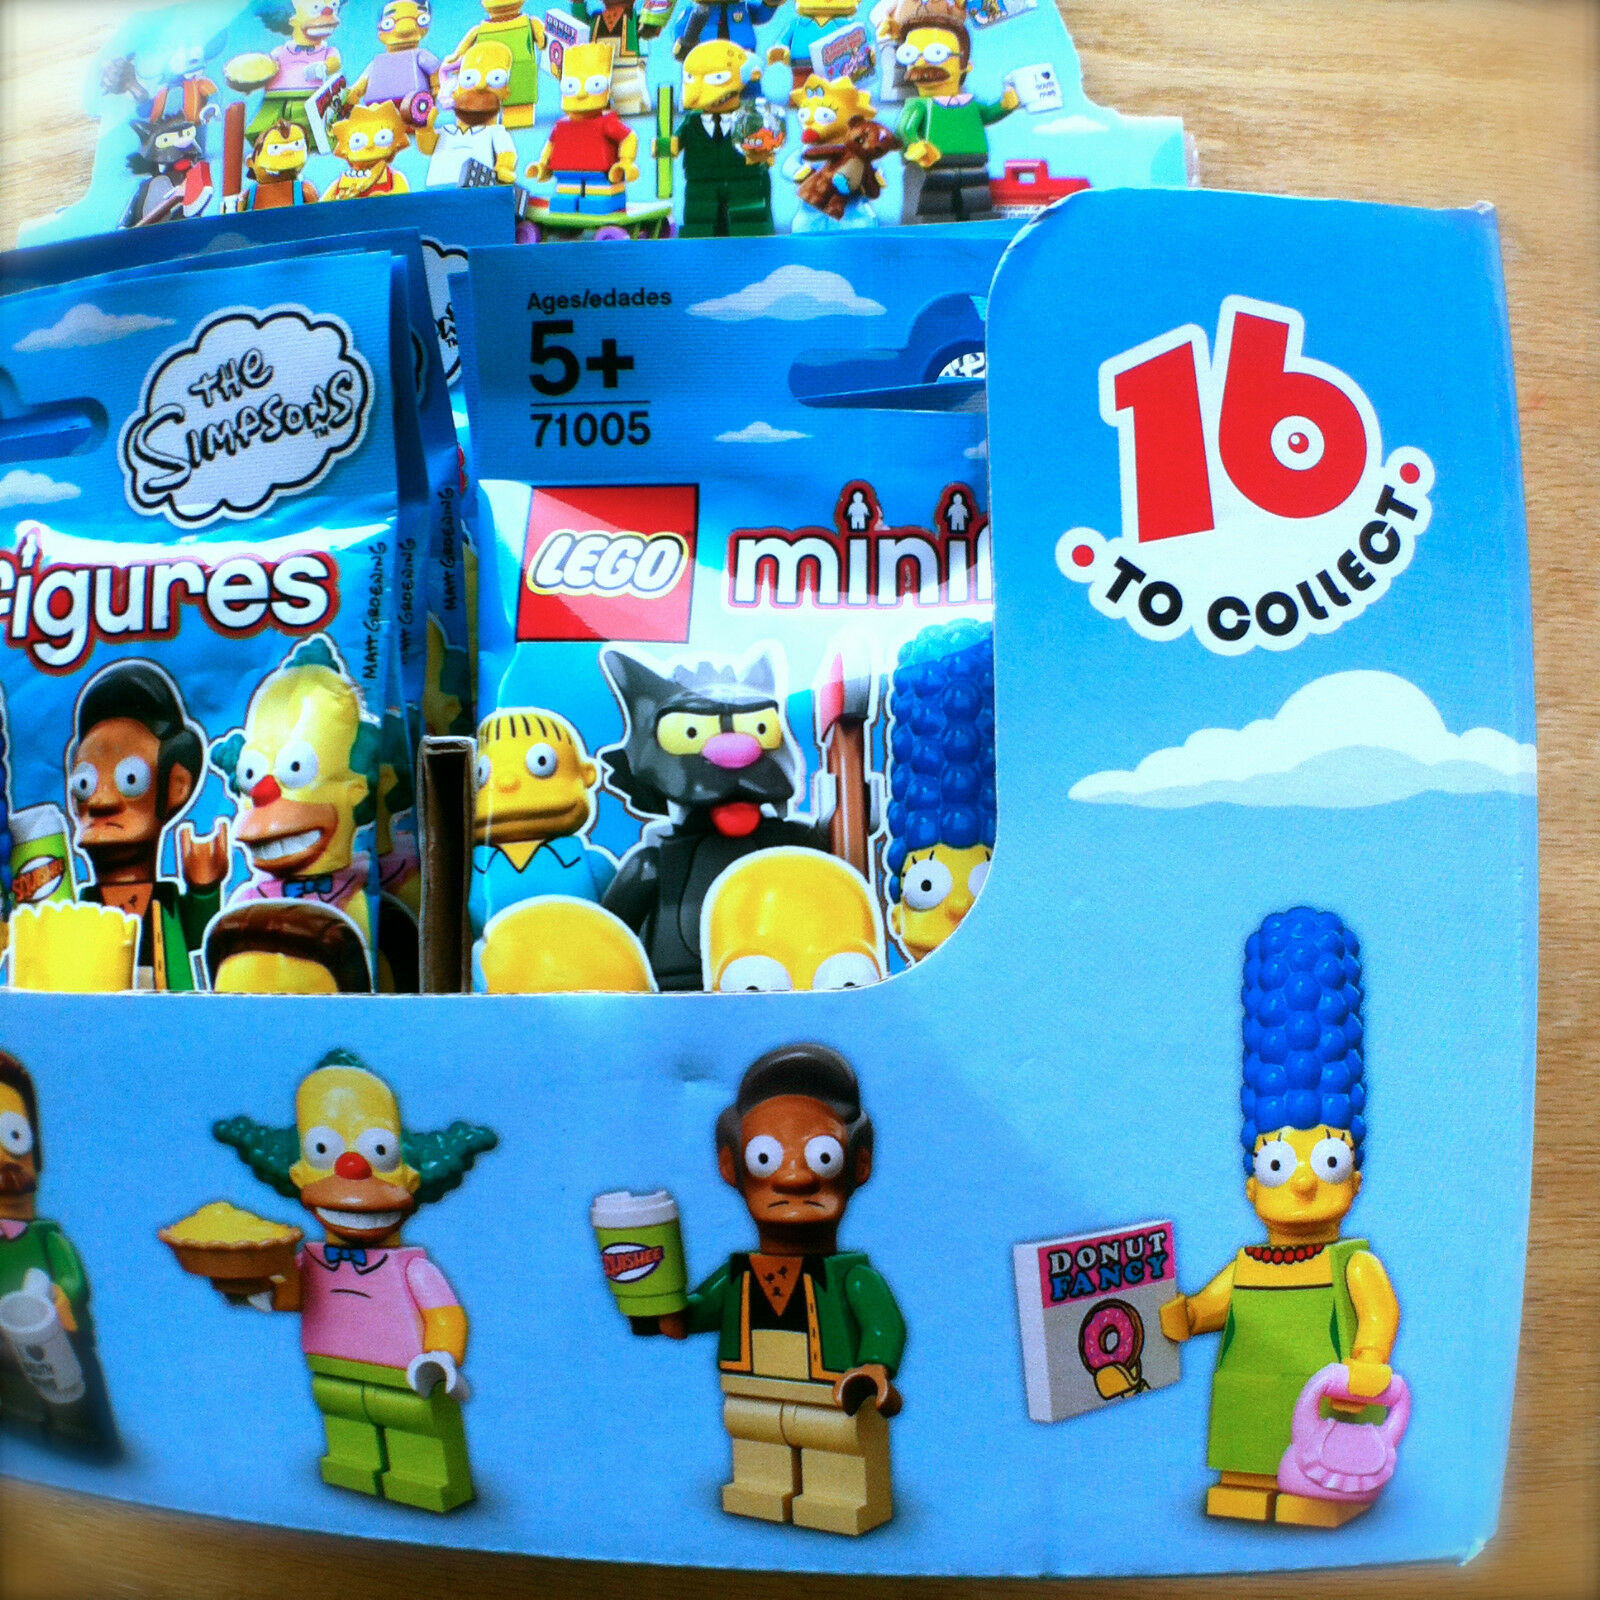 LEGO SIMPSONS 71005 THE SIMPSONS LEGO Minifigures Complete Set of 16 SEALED Minifigs Series 1 14bca6